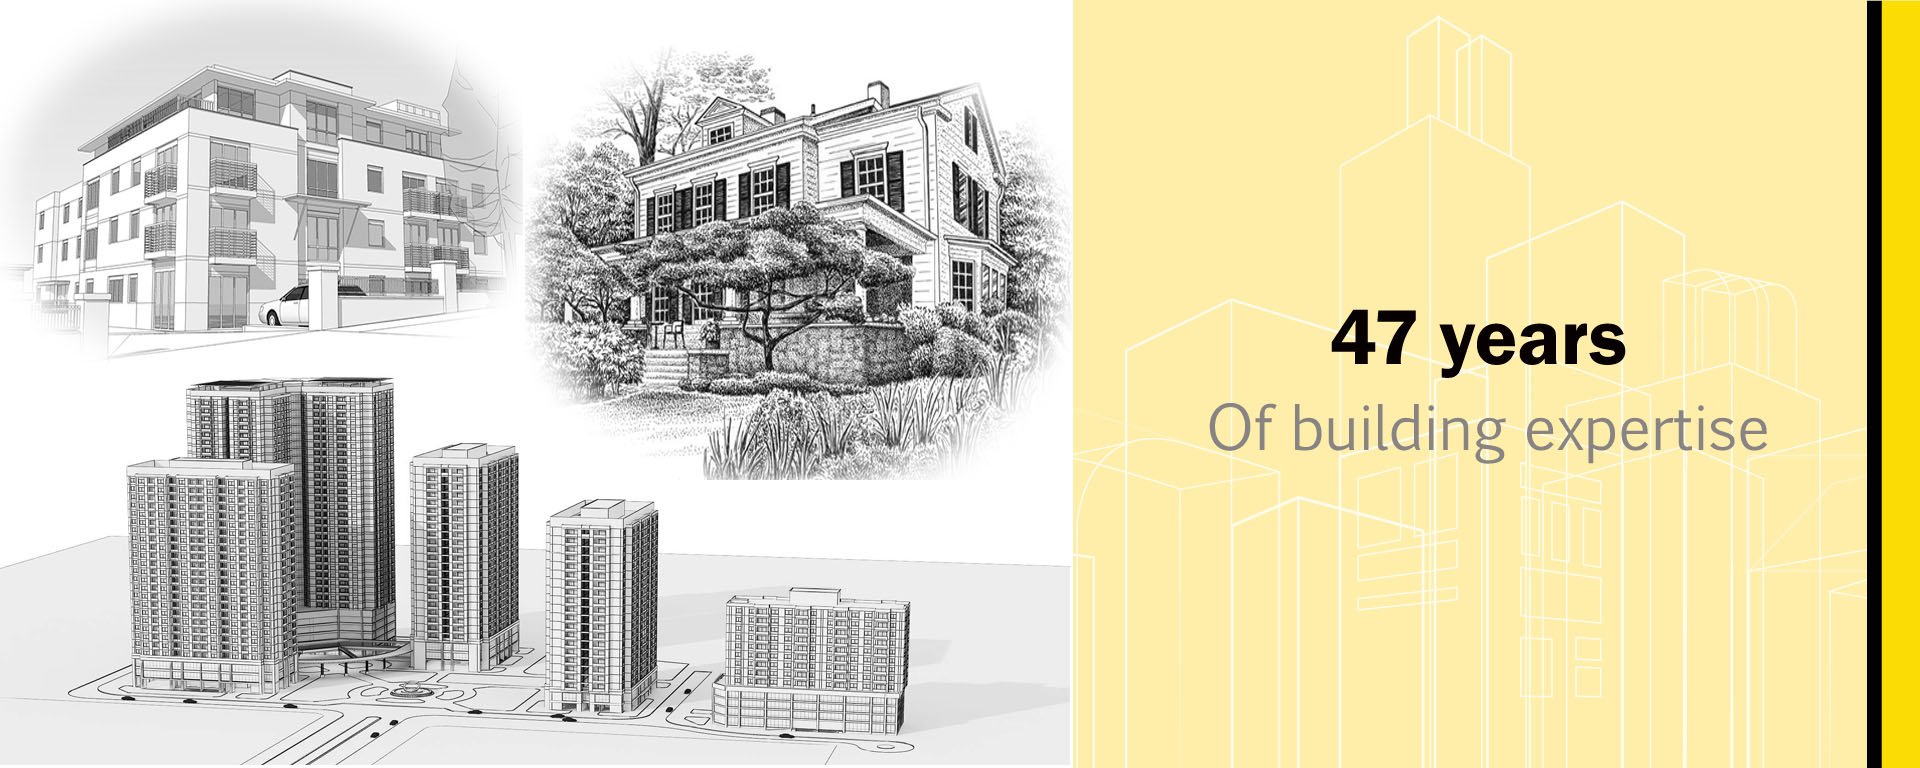 Web-Banner-Image-3-with-the-word-of-47-yrs-of-building-expertise-copy